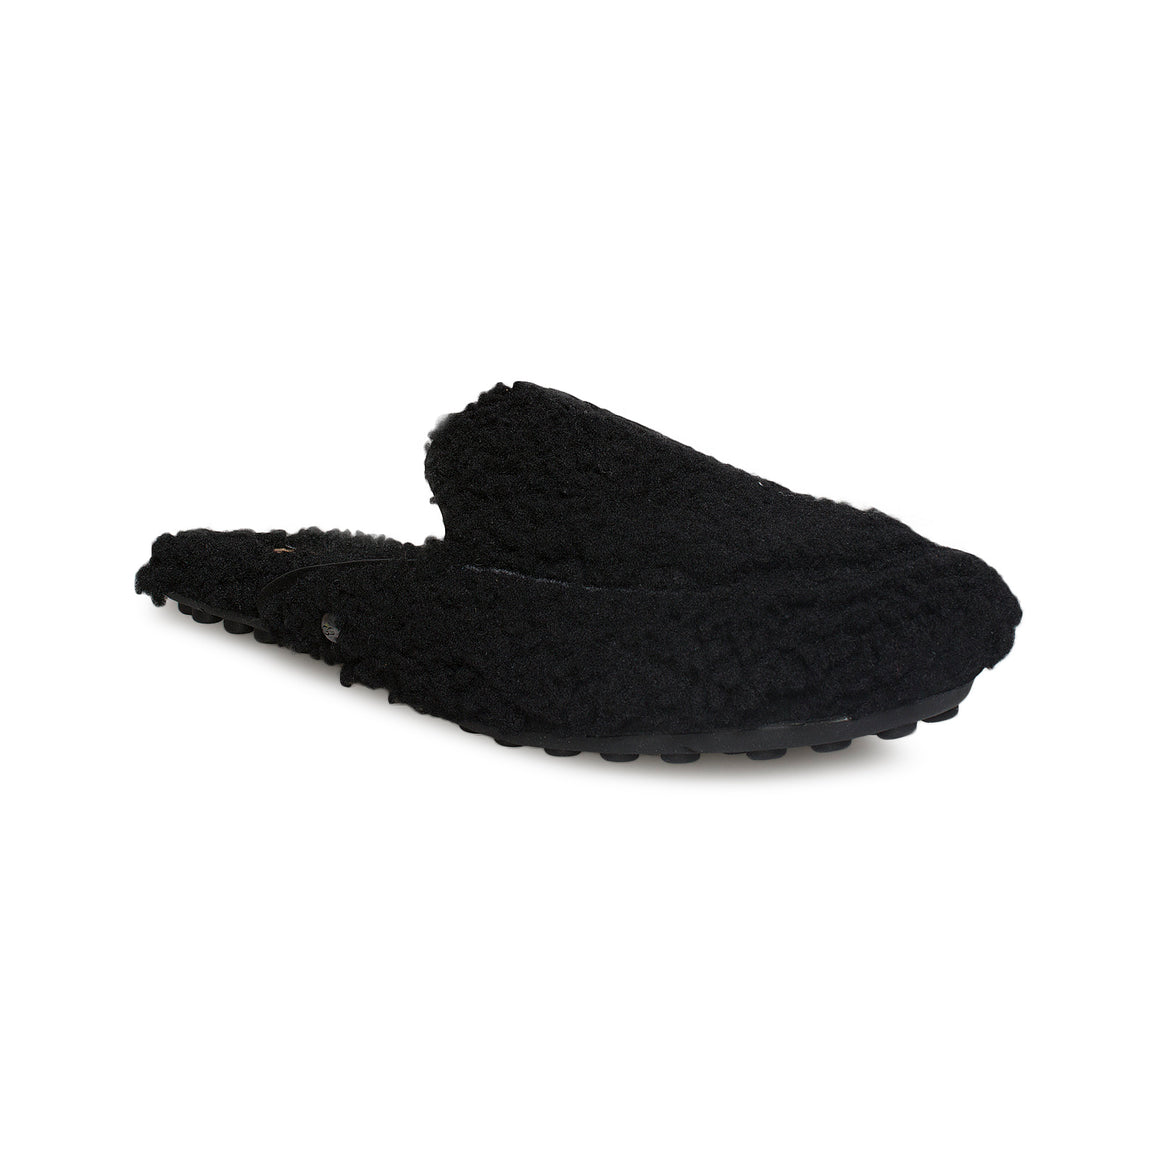 UGG Lane Fluff Black Loafer - Women's